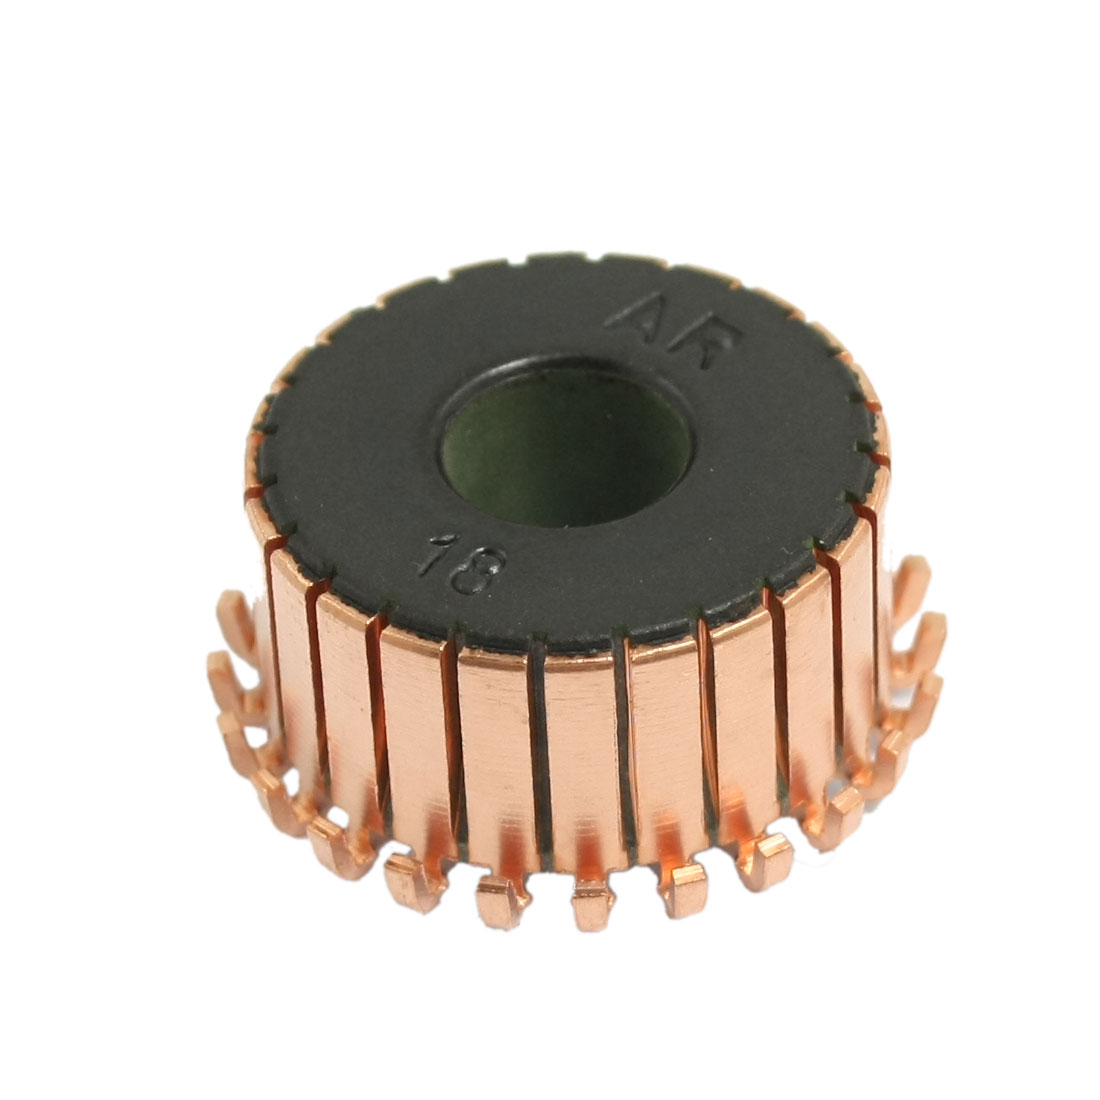 8mm x 21.5mm x 12mm Copper Casing Mounted On Armature Motor Commutator